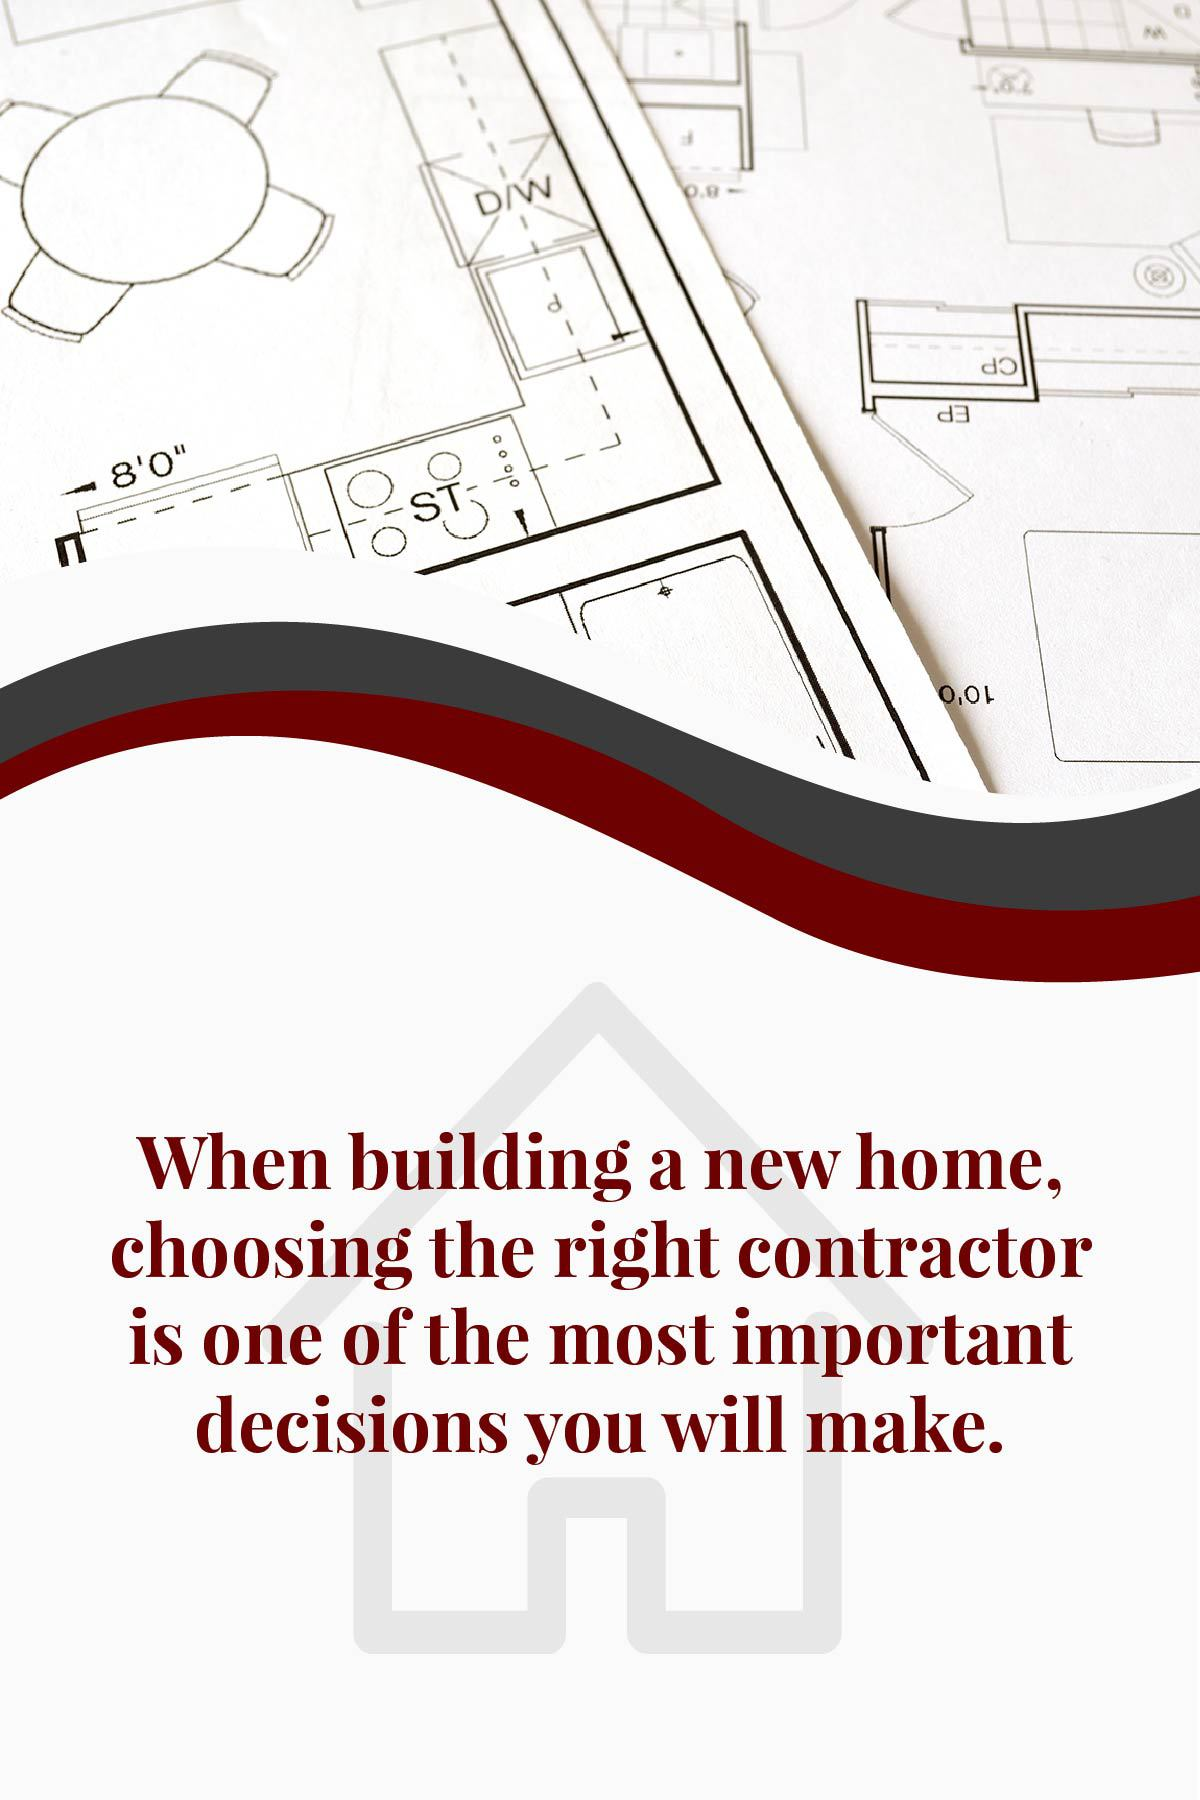 Choosing the right construction contractor is important